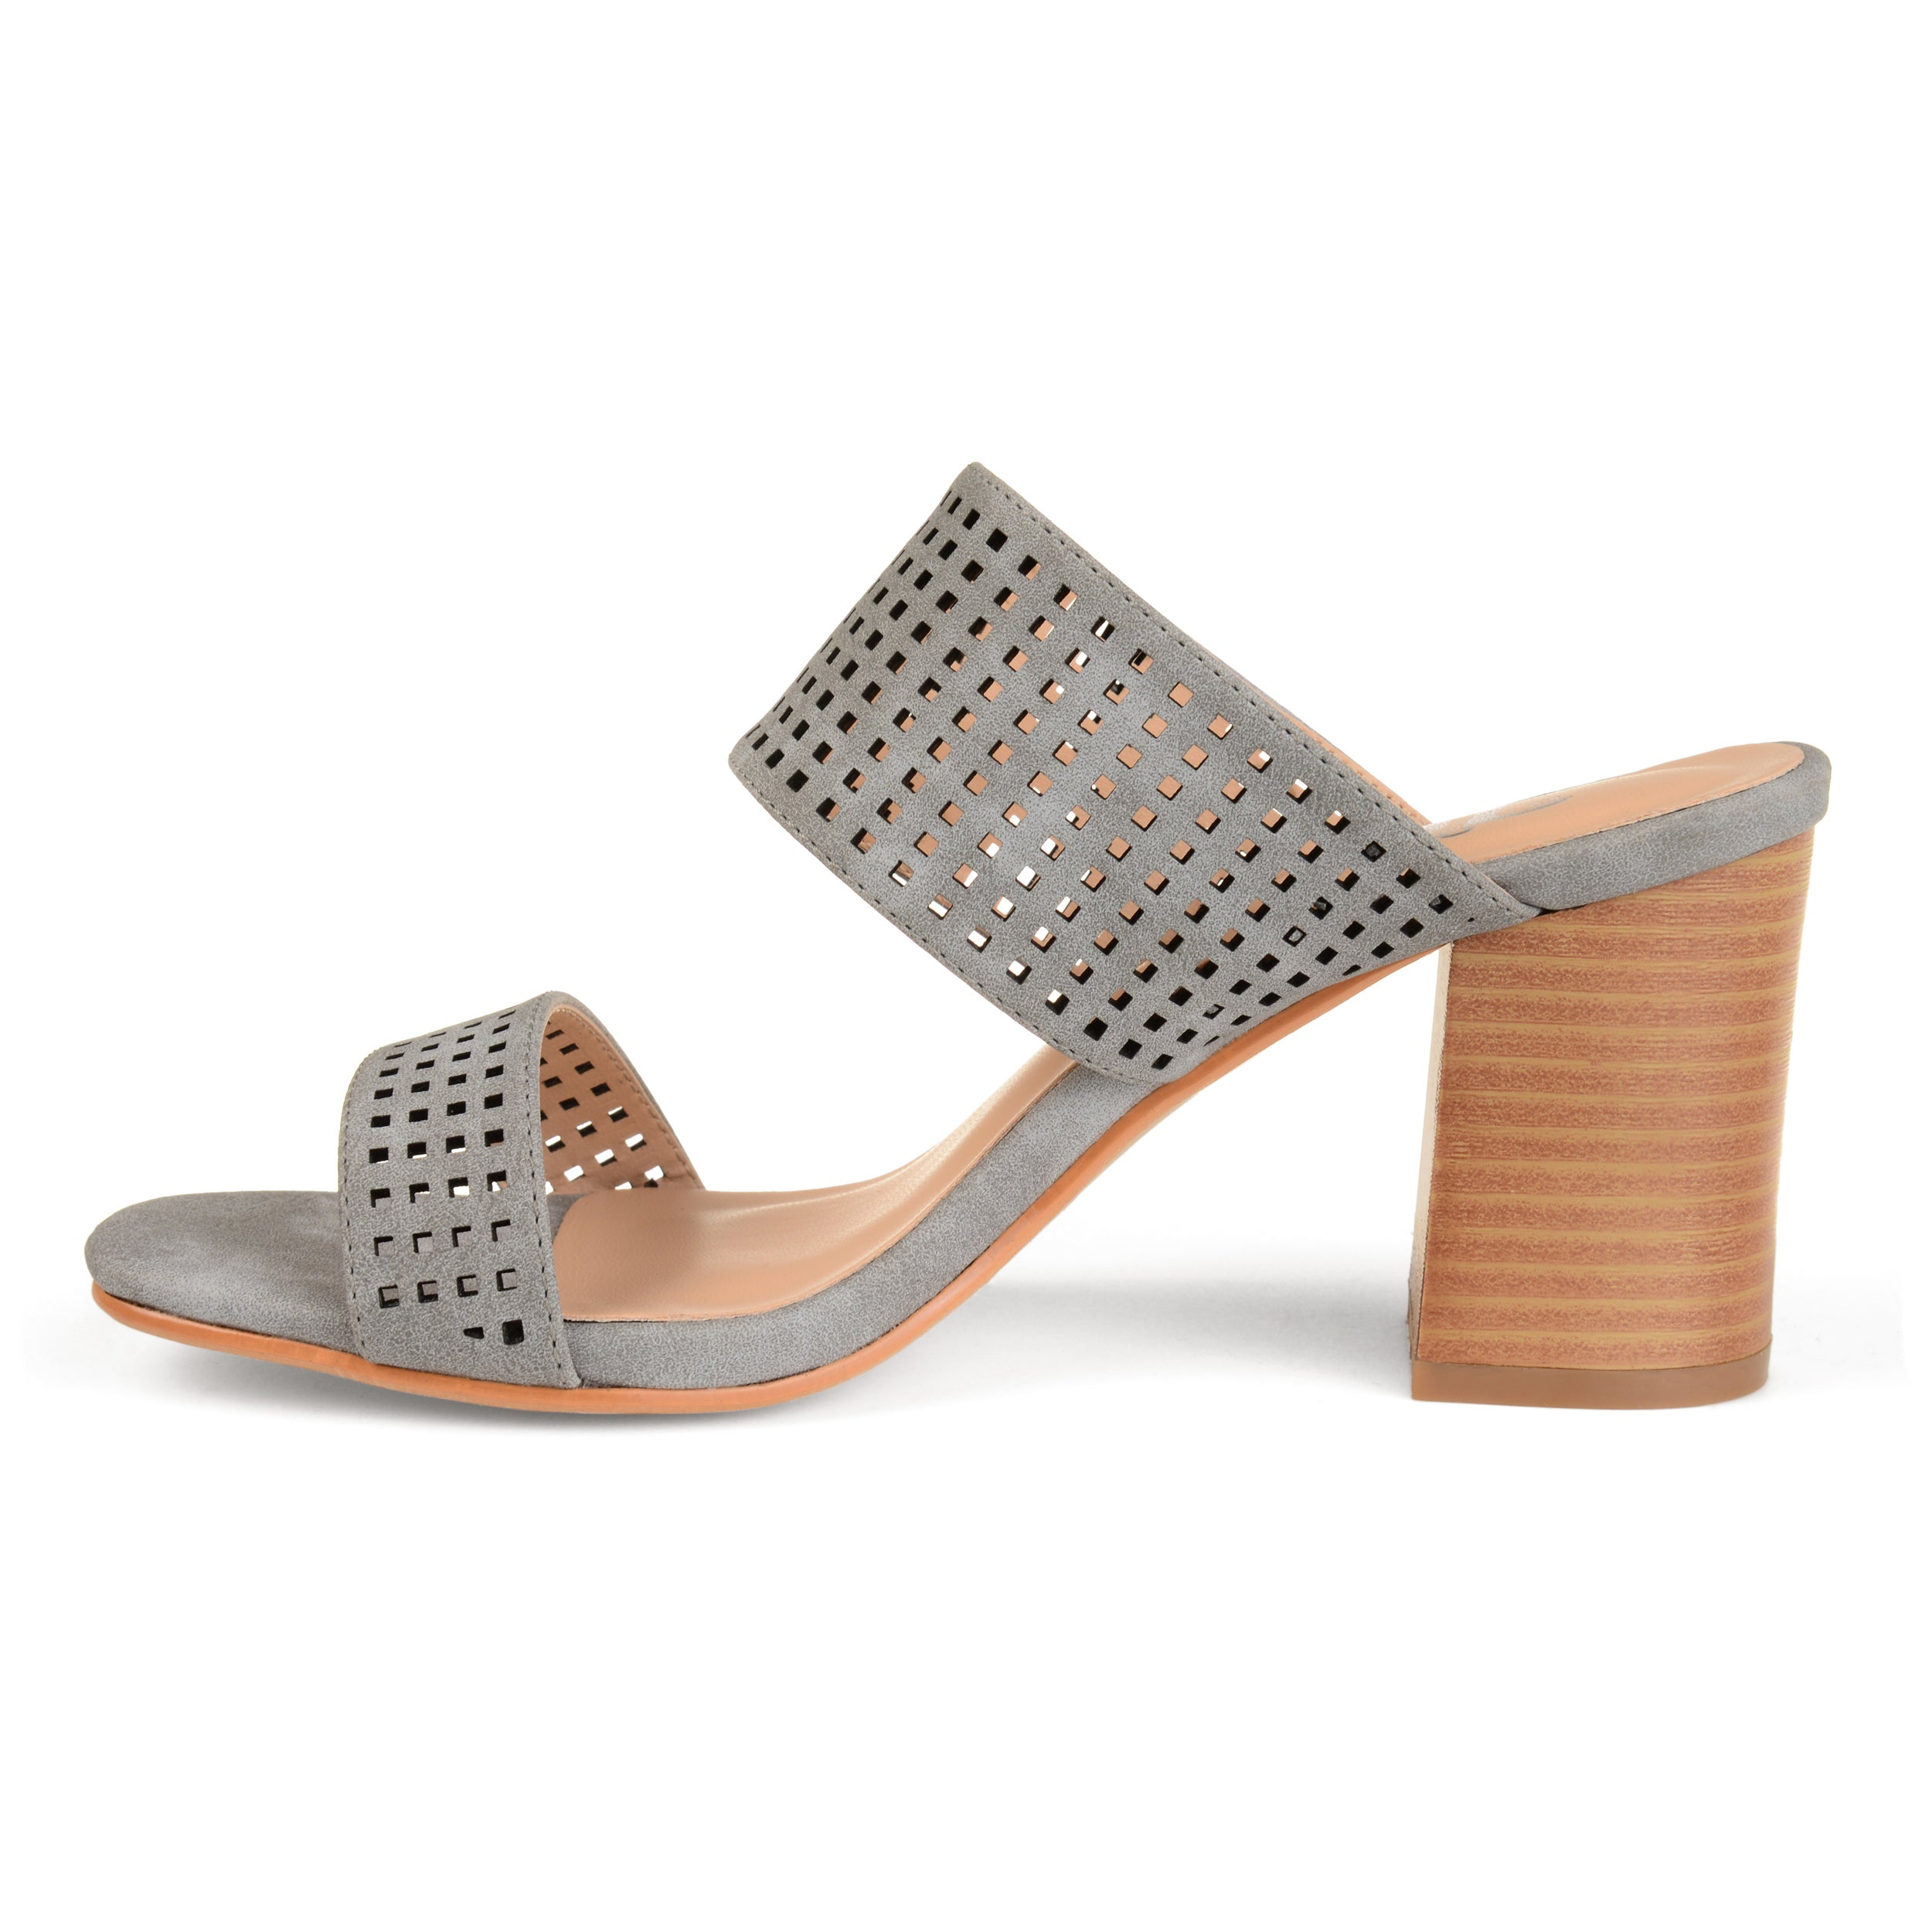 5320a82b159d Shop Journee Collection Women s  Sonya  Dual-strap Laser-cut Heeled Mules -  On Sale - Free Shipping On Orders Over  45 - Overstock - 19844006